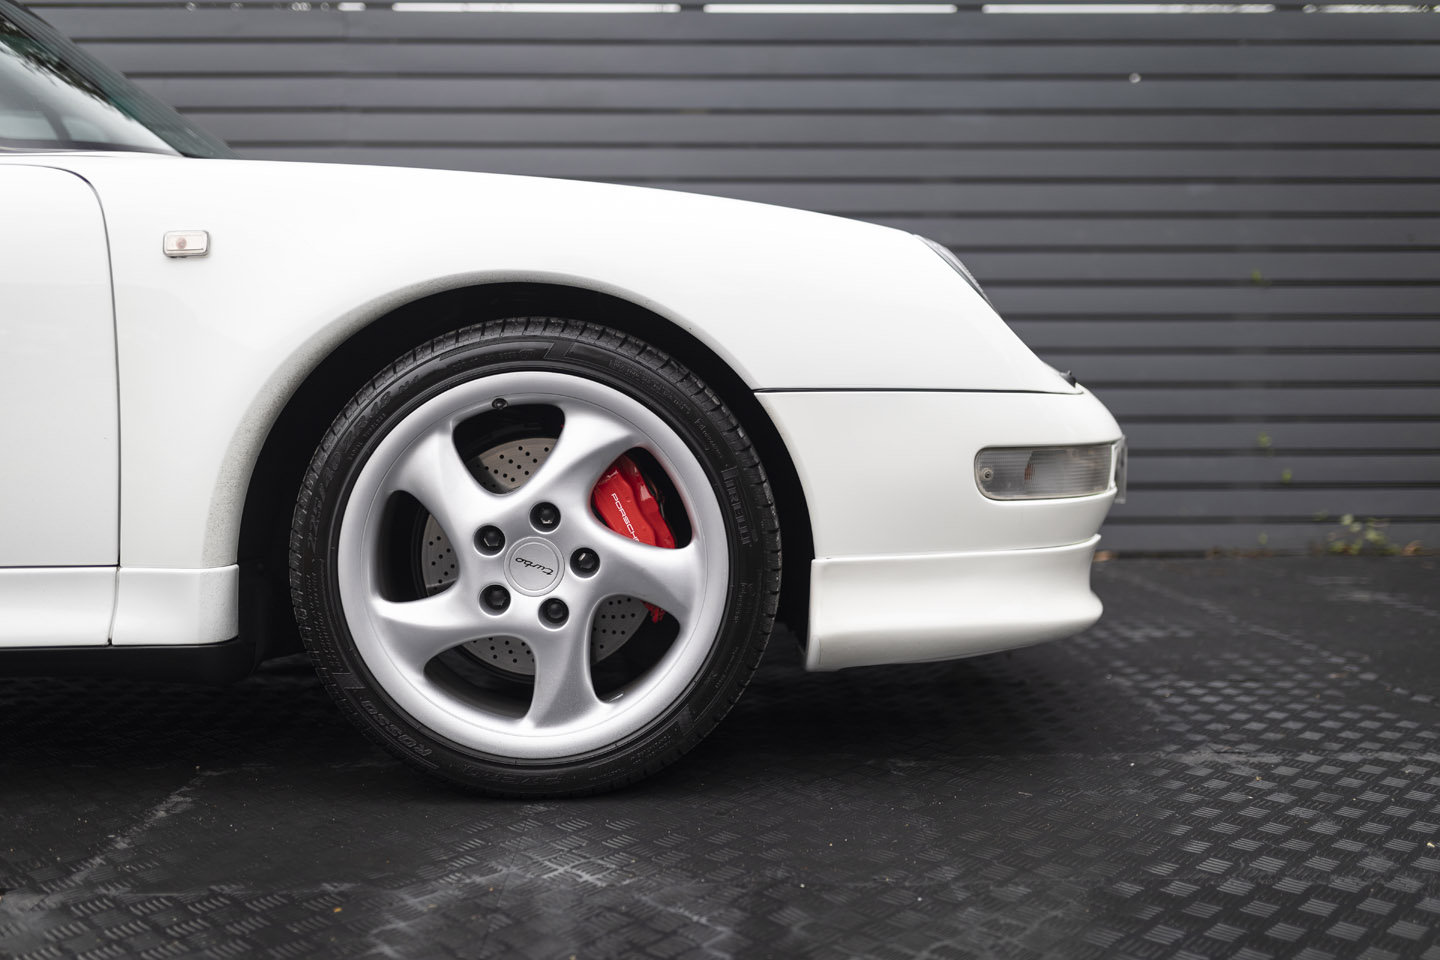 1996 Porsche 993 TURBO FACTORY X50/X79 PACKS !! LHD For Sale (picture 6 of 6)